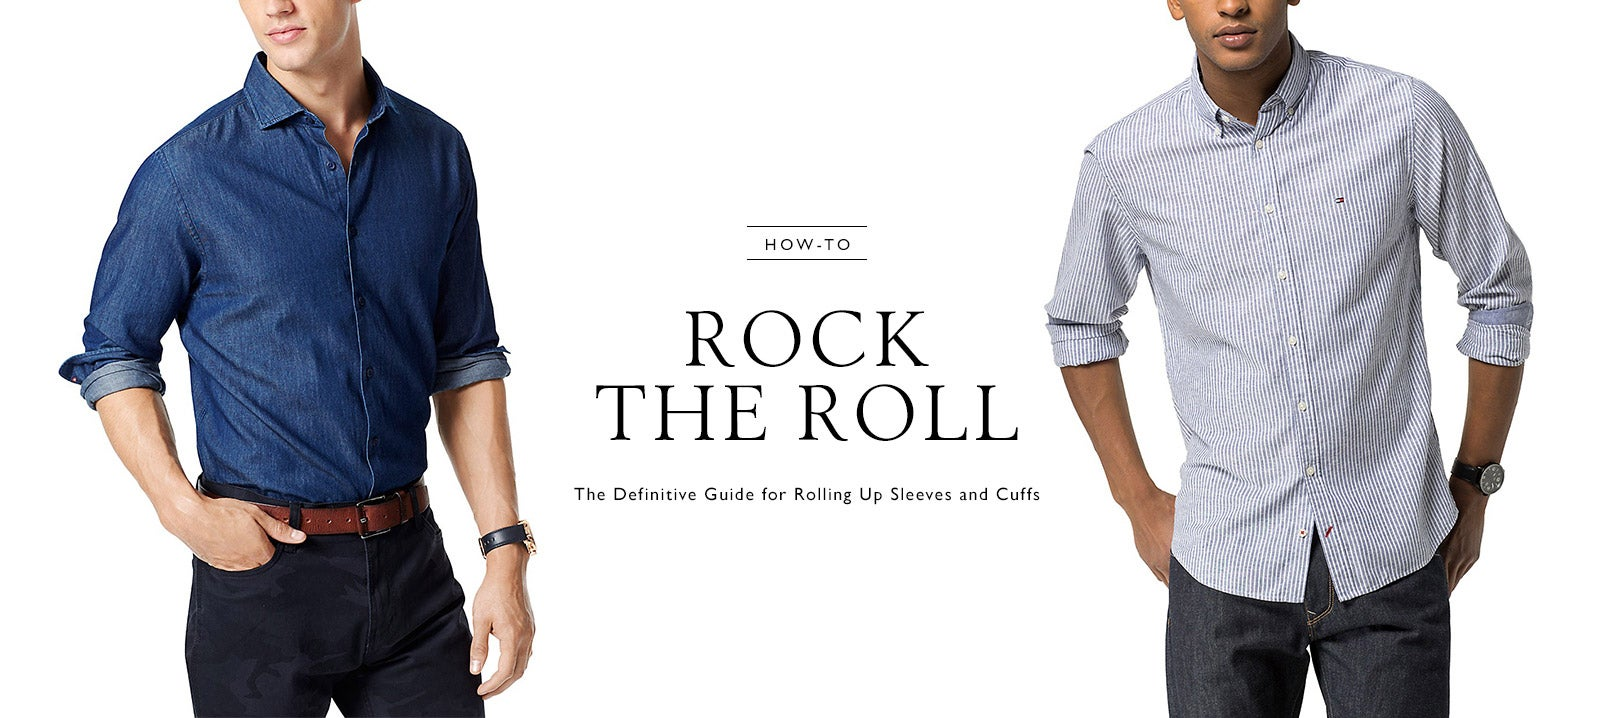 How To Rock The Roll Tommy Hilfiger Usa